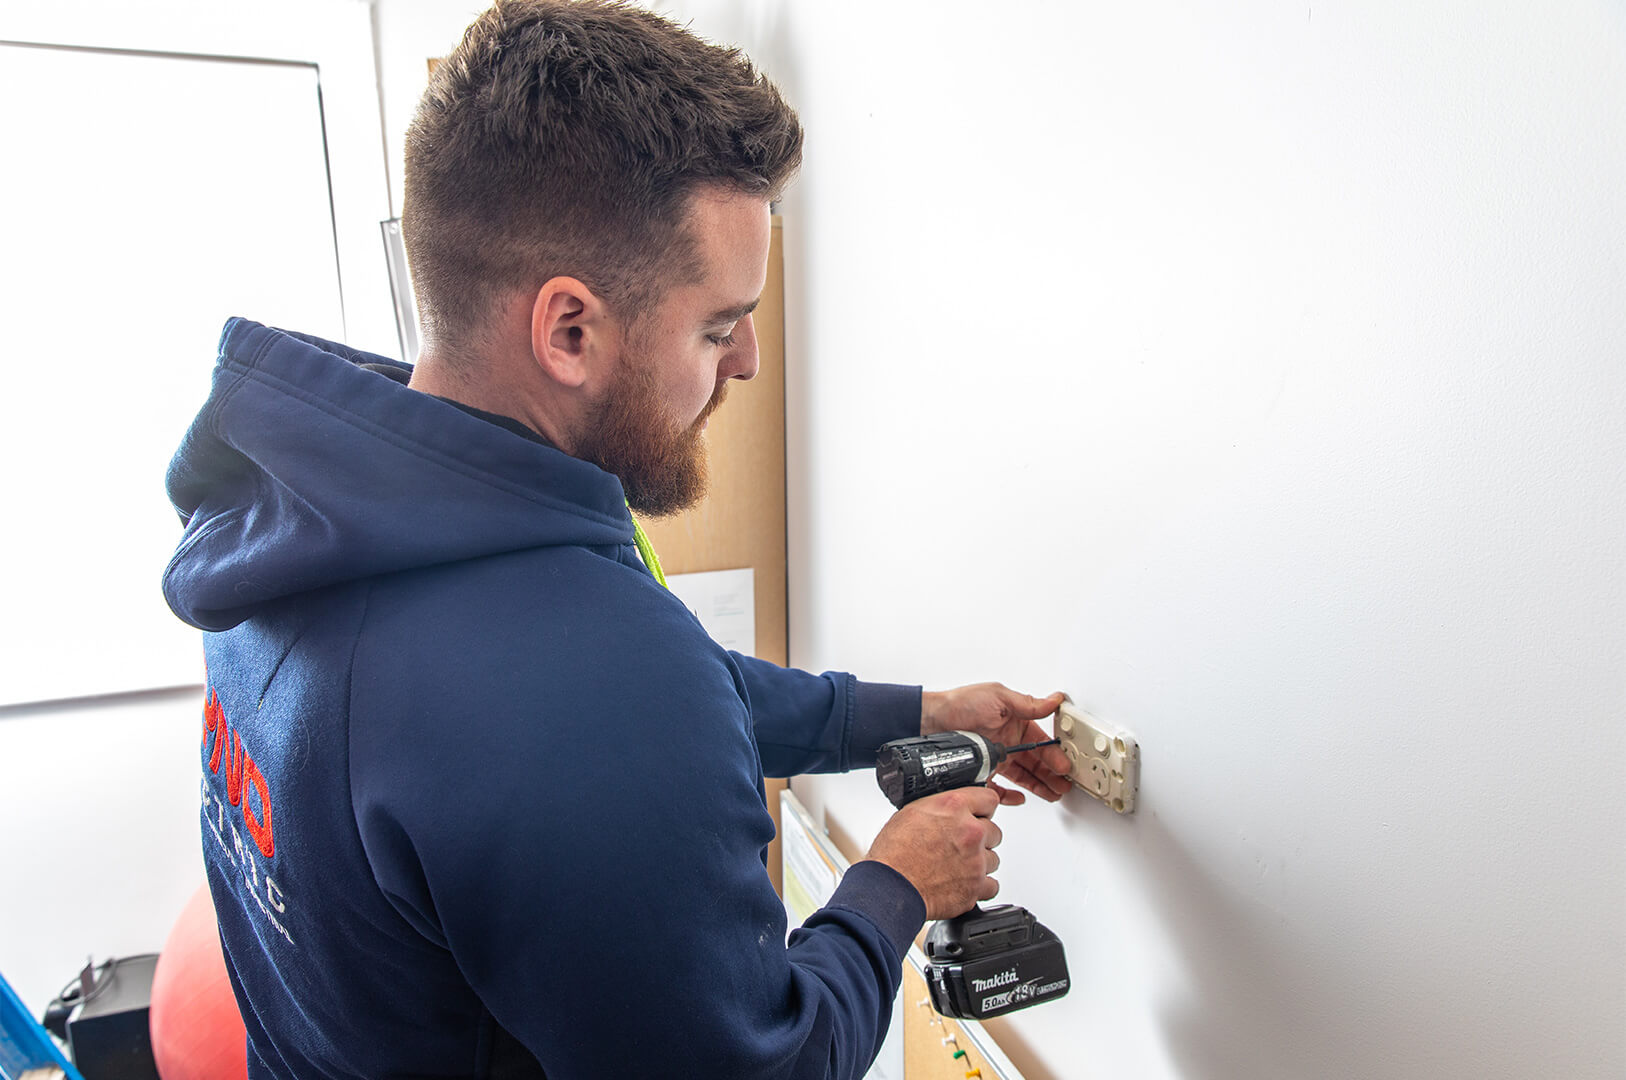 licensed electrician in adelaide for commercial services & repairs